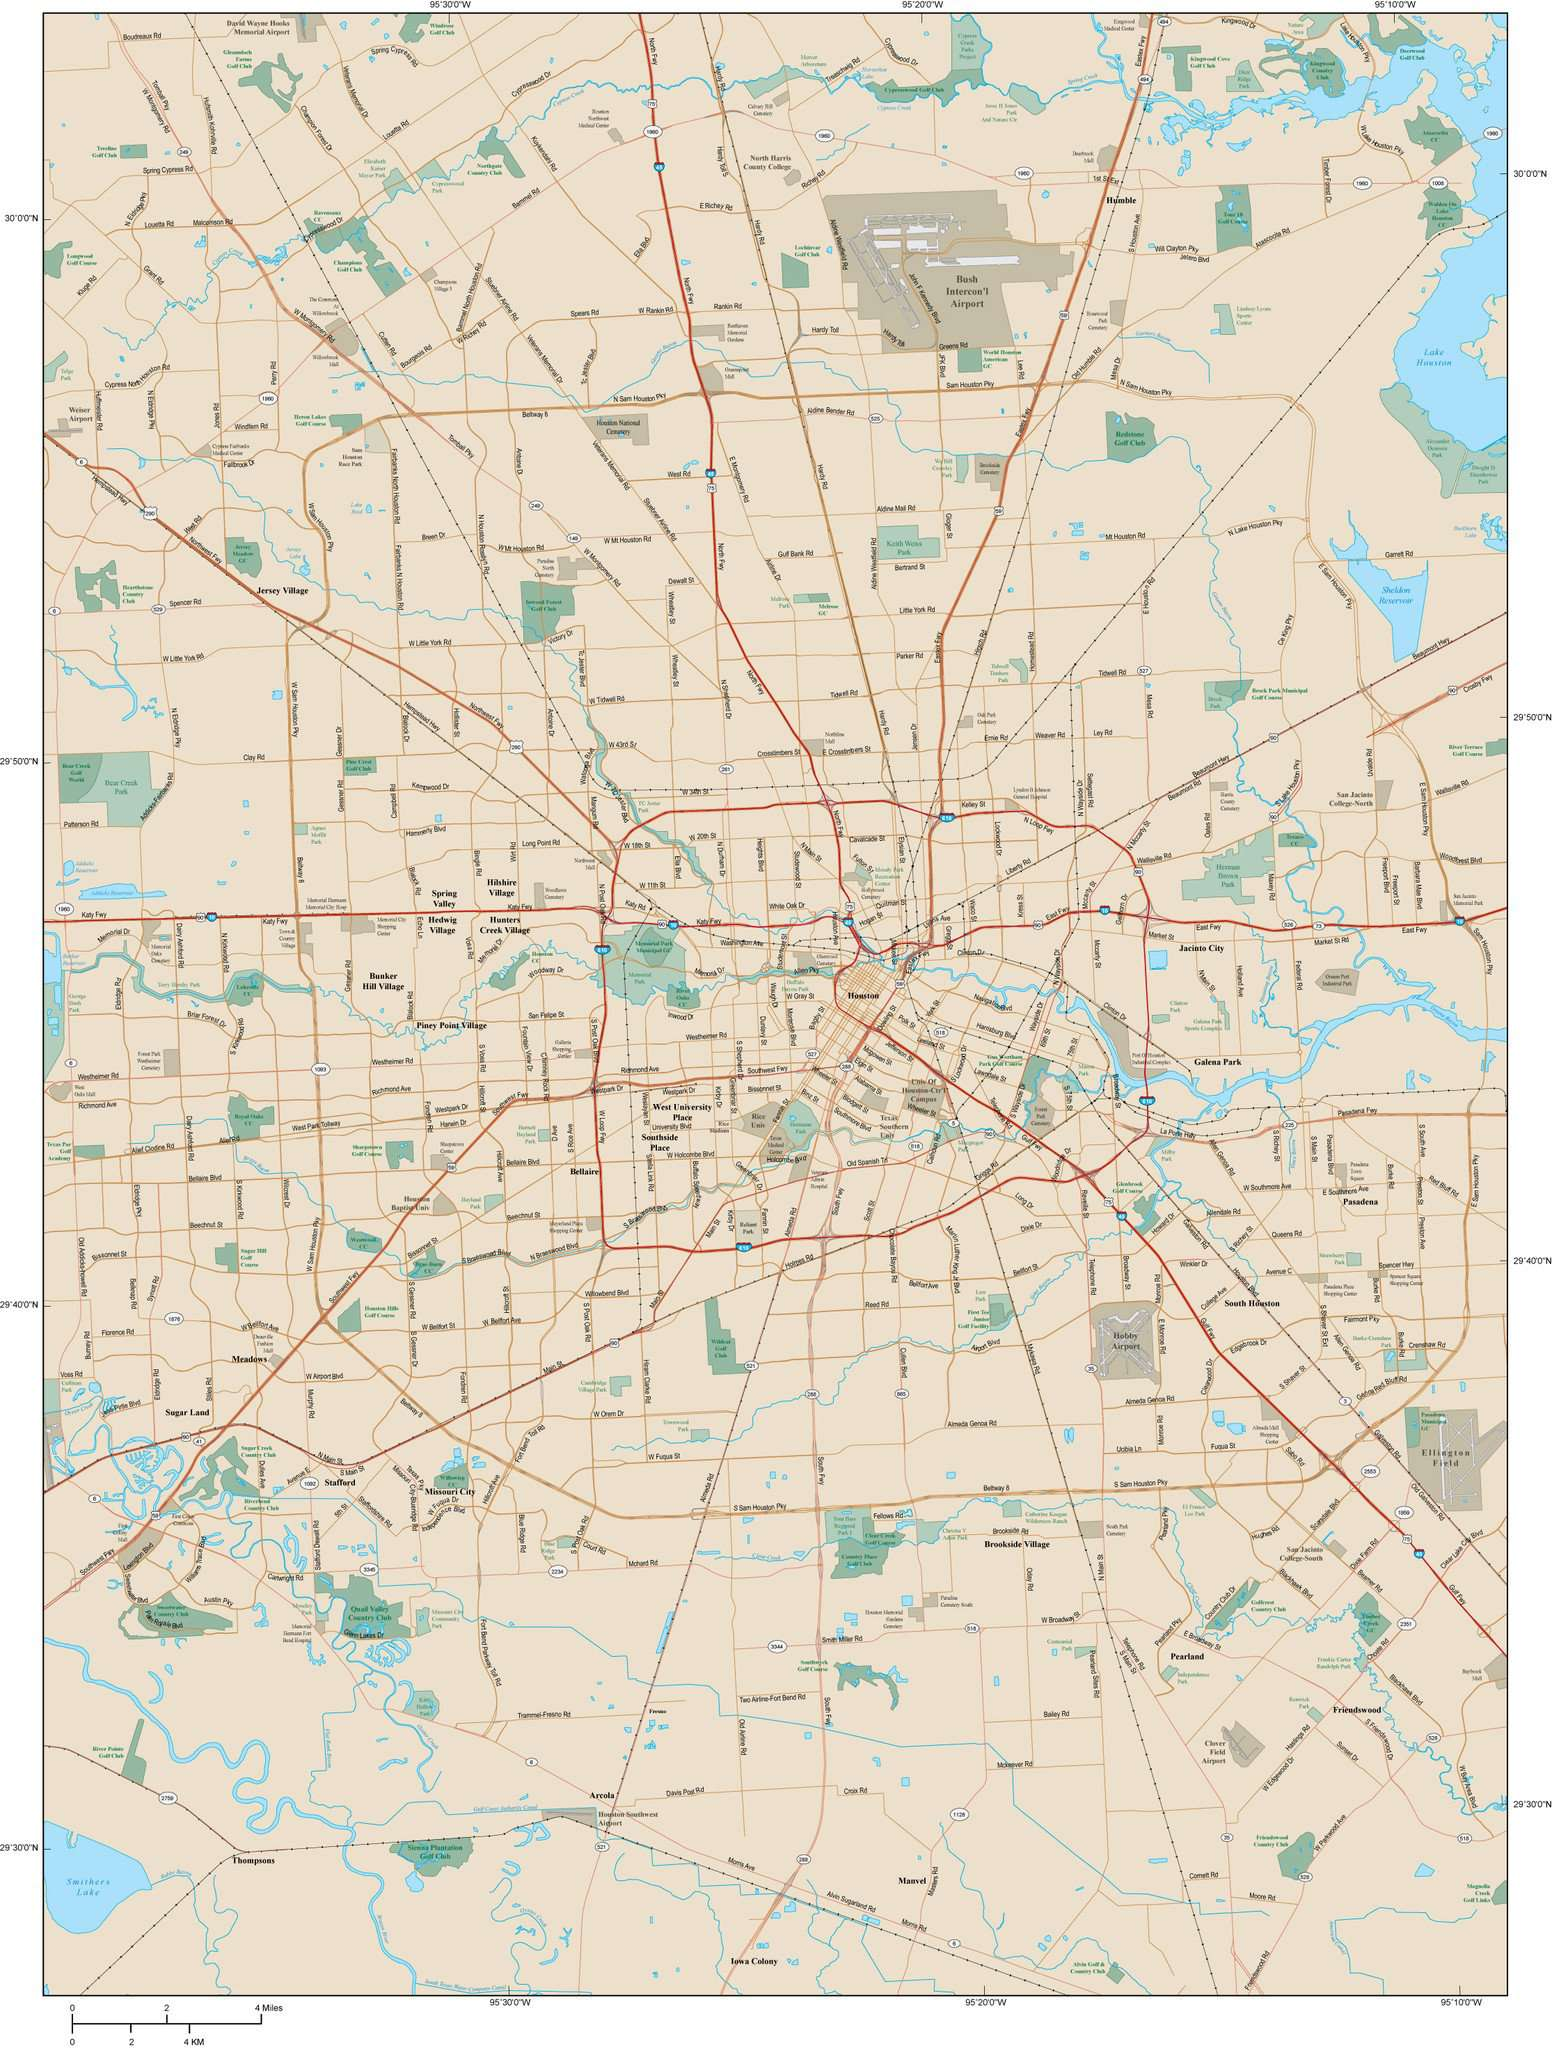 Houston TX Map Metro Area - 1452 square miles - with Arterial and Major  Road Network